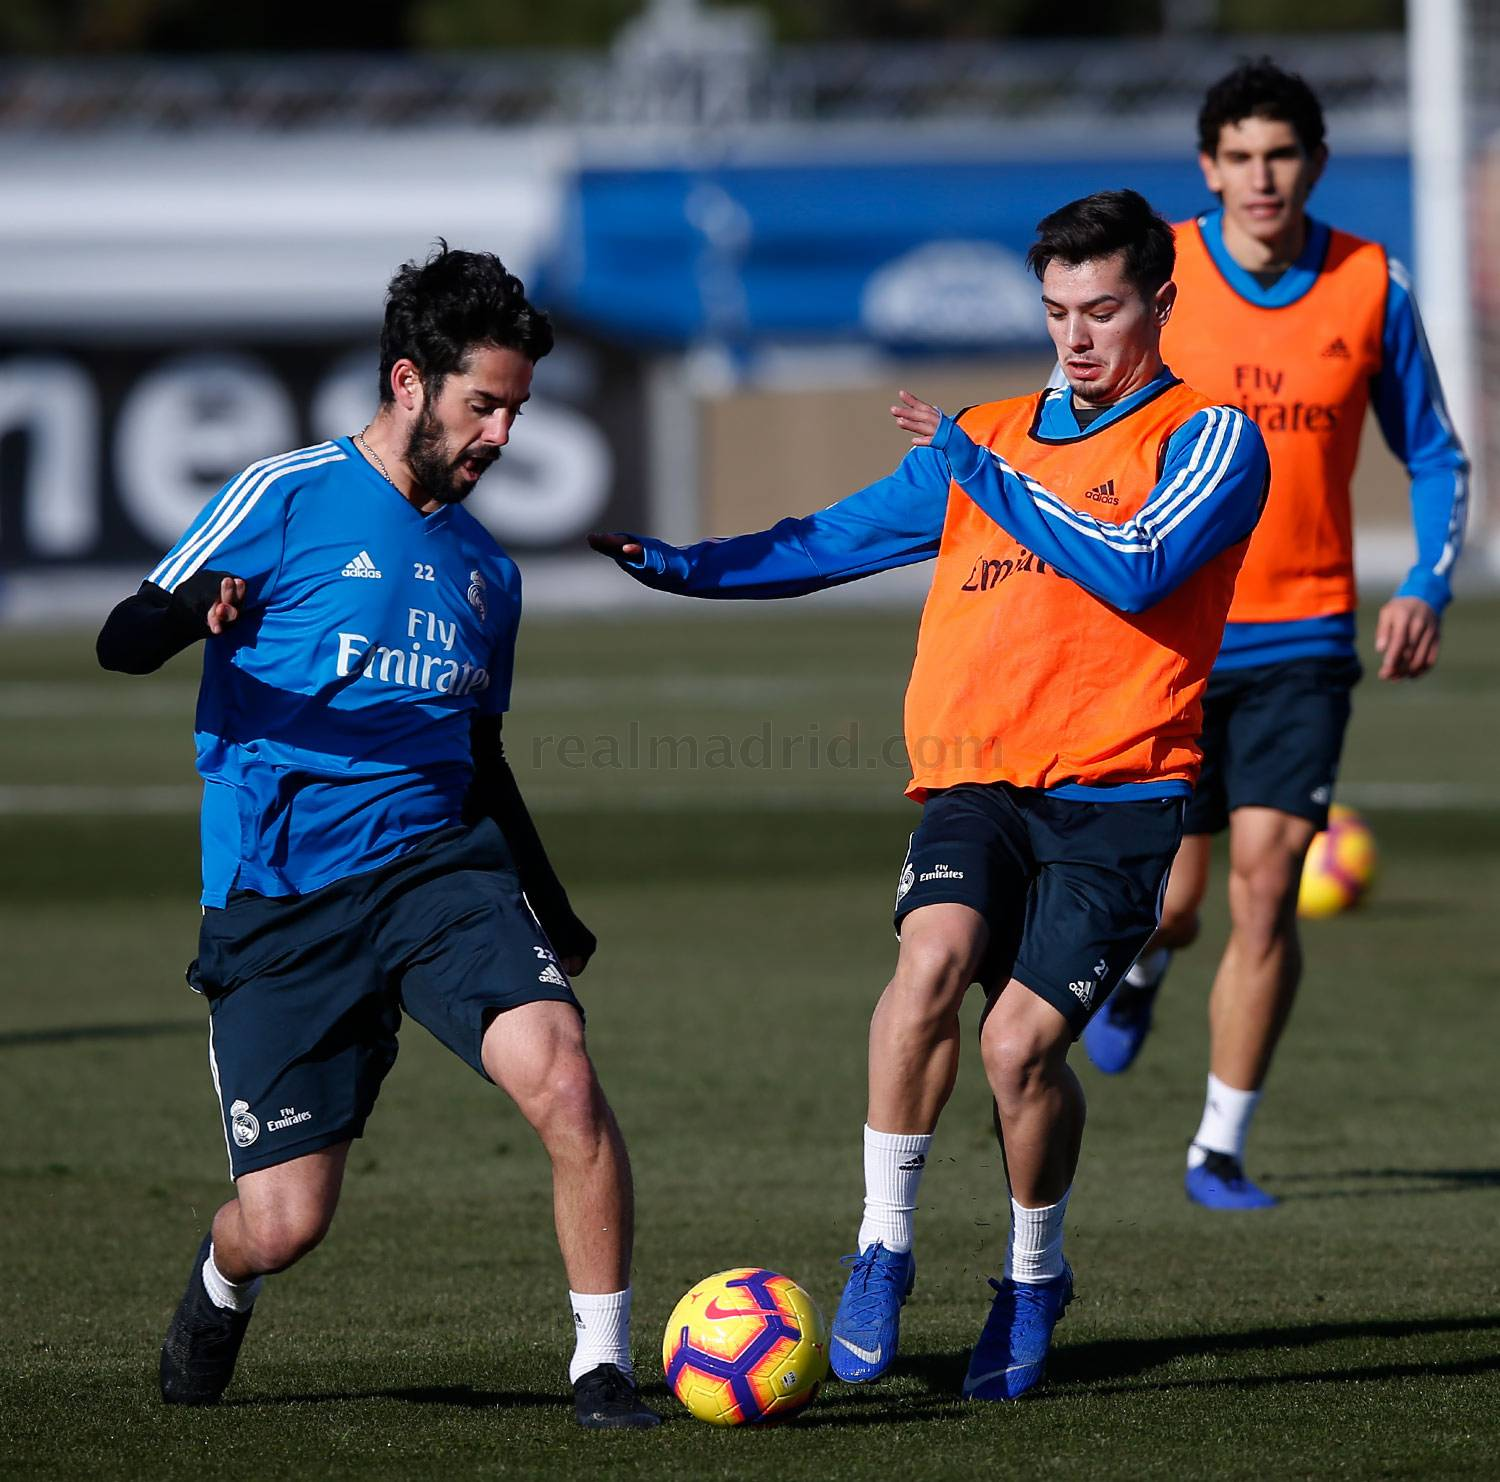 Real Madrid - Entrenamiento del Real Madrid - 10-01-2019